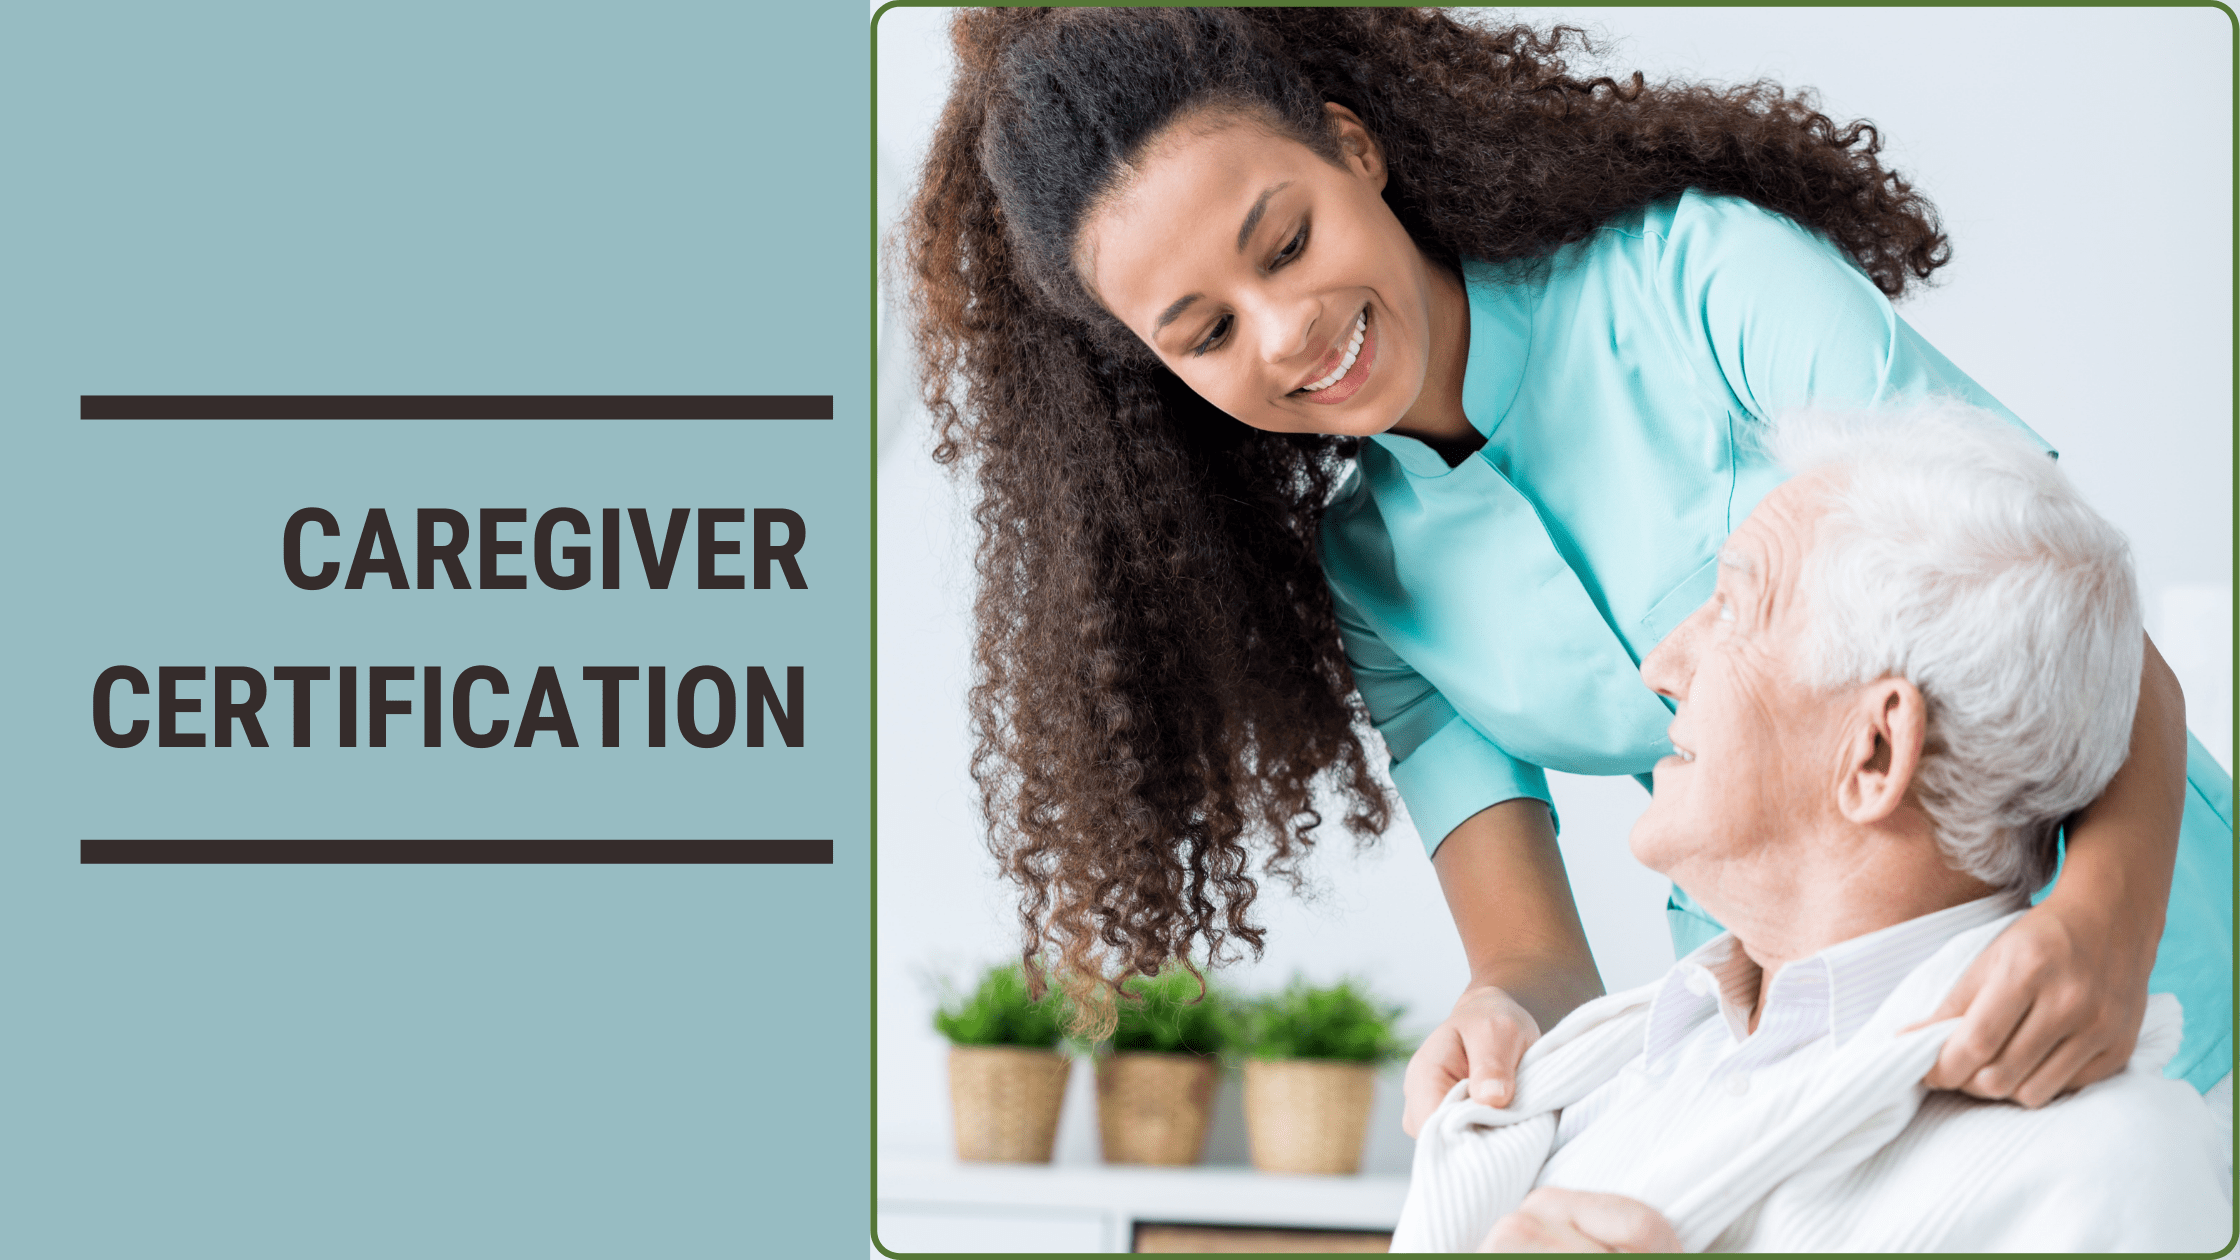 What You Need To Know About Caregiver Certification